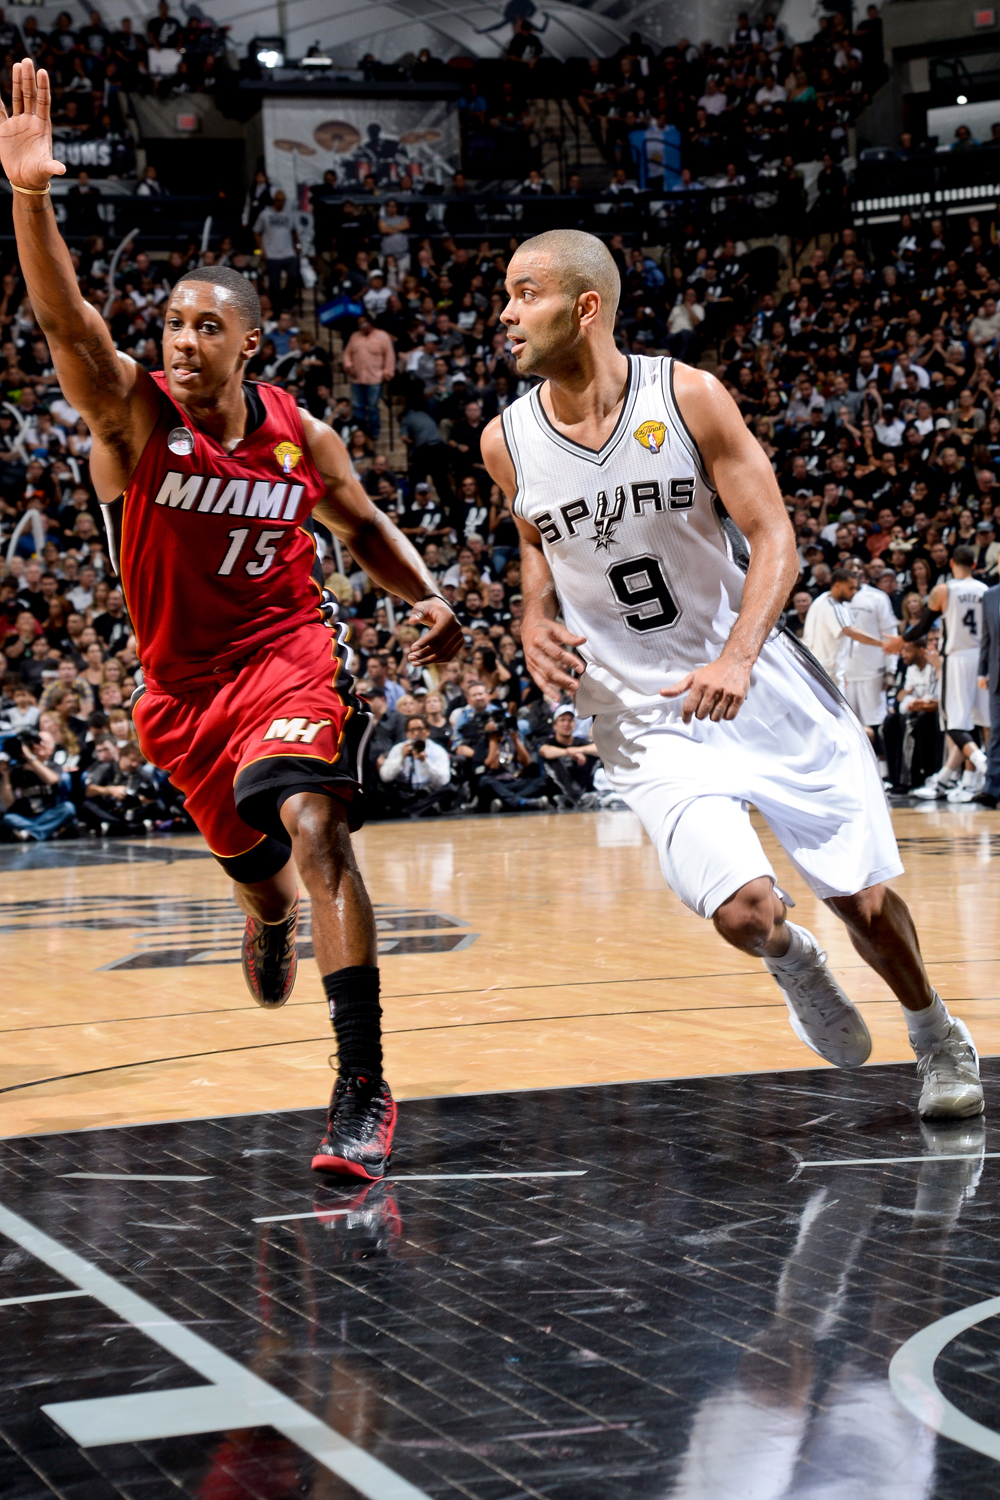 Game 3: Spurs 113, Heat 77